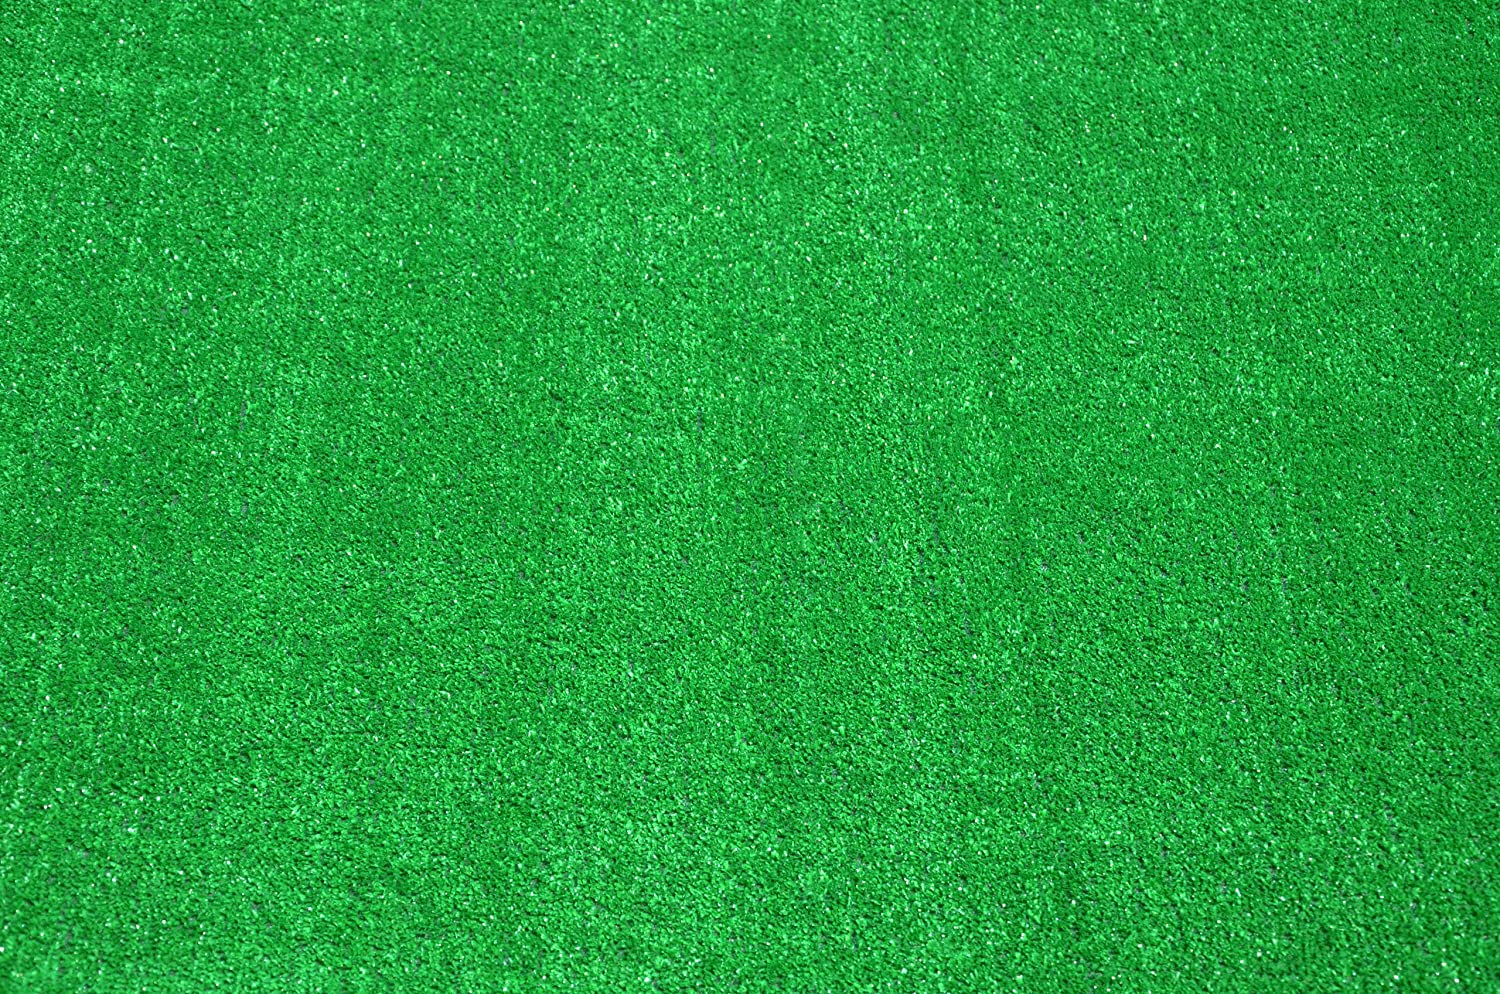 Amazon.com: Indoor/Outdoor Carpet Green Artificial Grass Turf Area ...